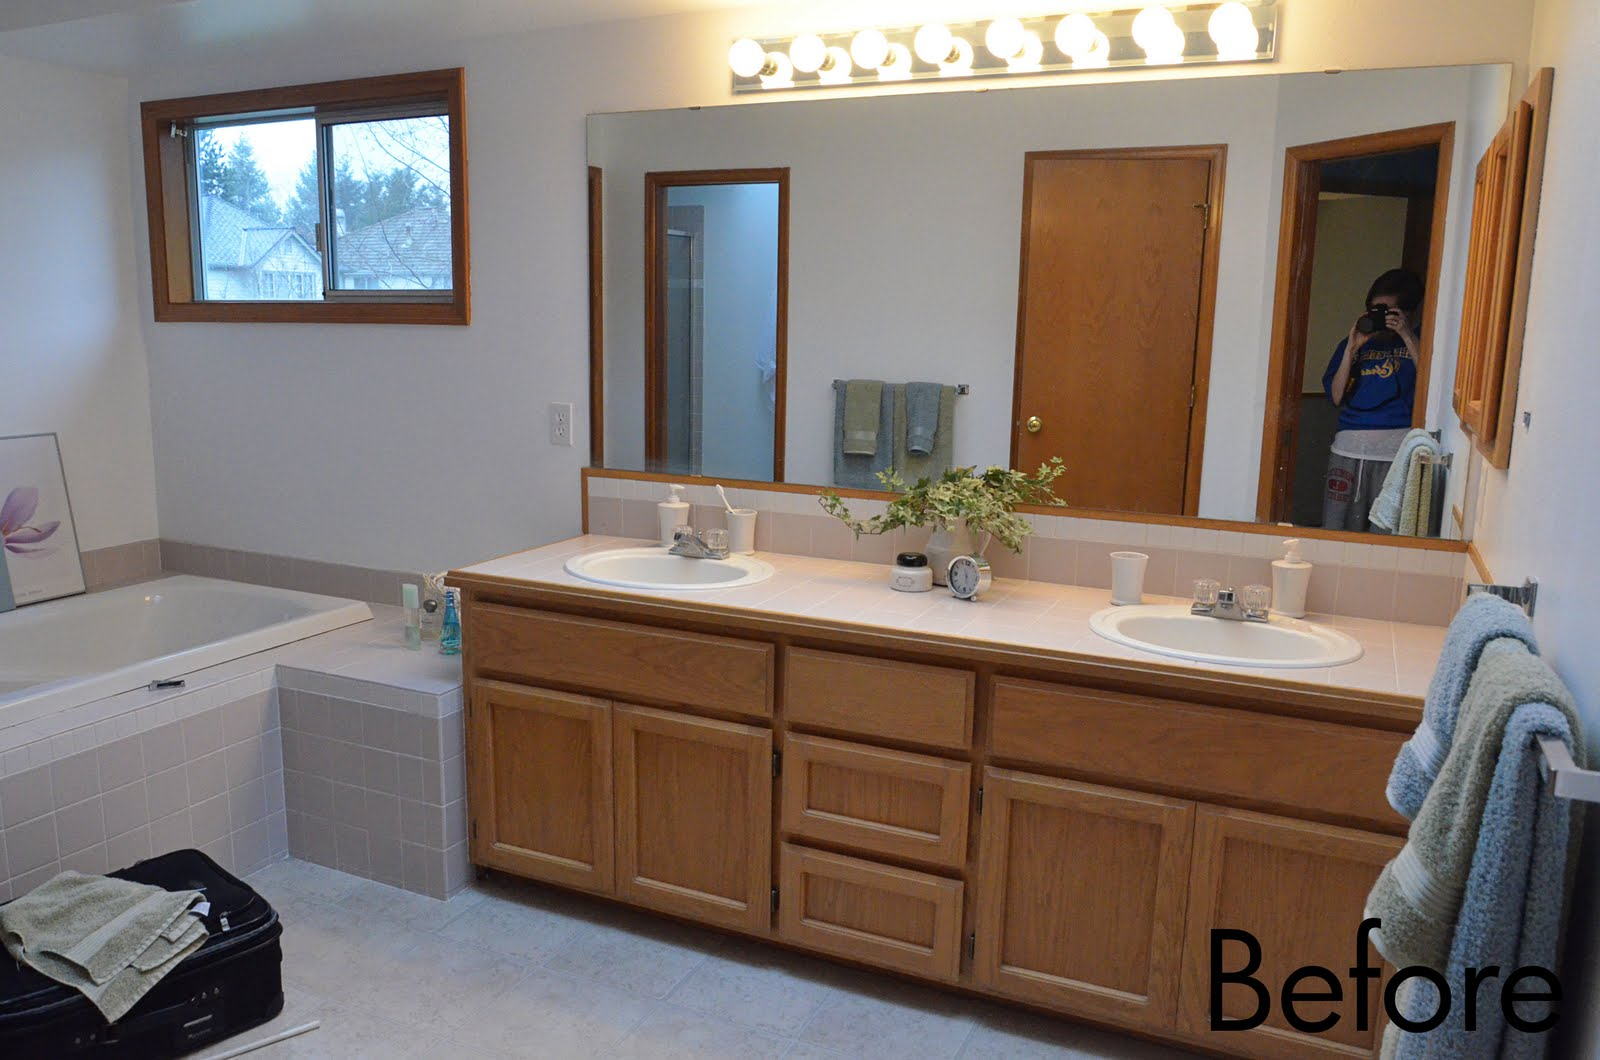 The allison wonderland the bathroom remodel is over well for Bathroom ideas with oak cabinets